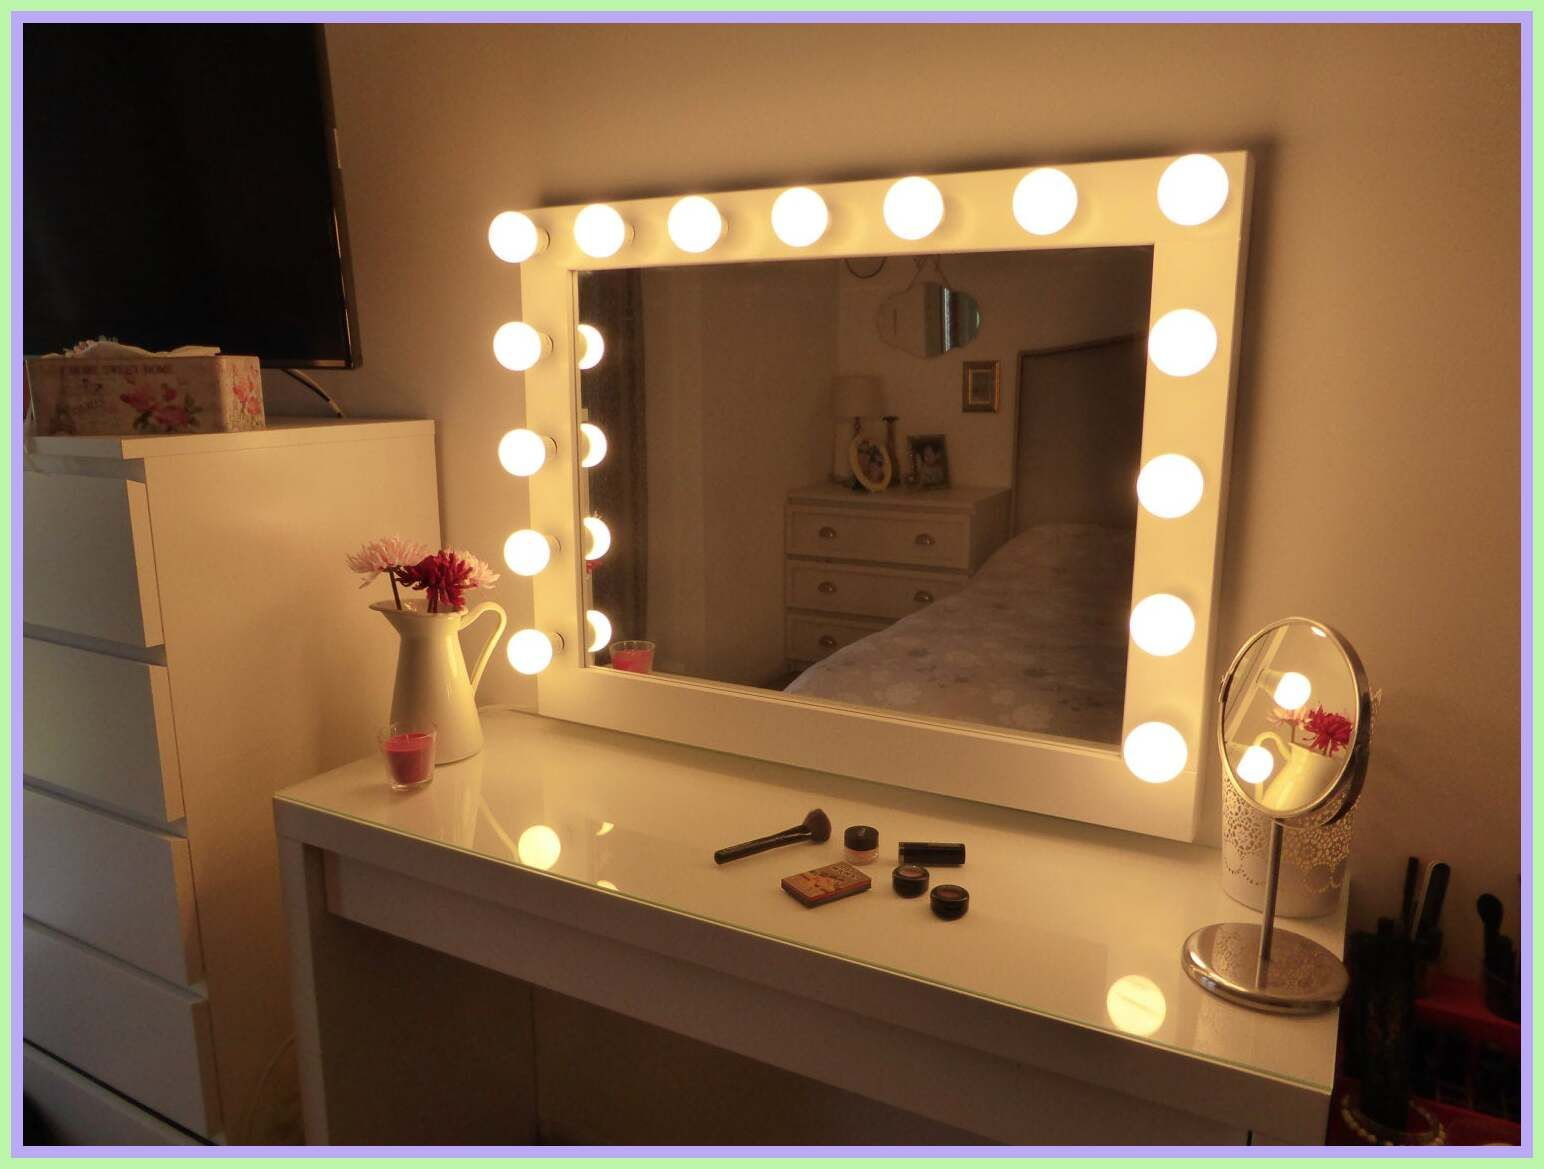 97 Reference Of Vanity Mirror Makeup Lights In 2020 Lighted Vanity Mirror Diy Vanity Mirror Diy Vanity Mirror With Lights